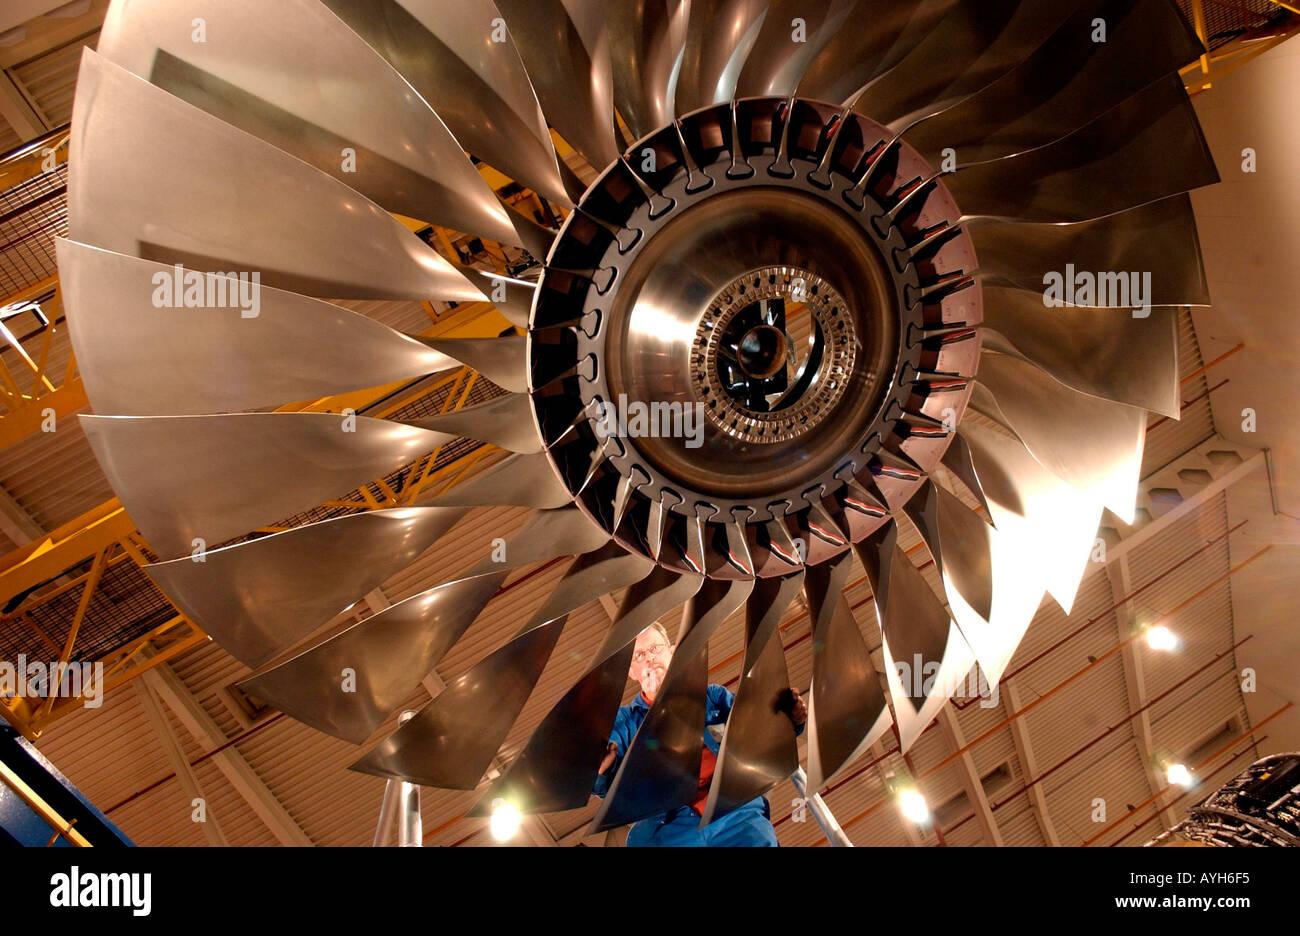 Rolls Royce New Engine Assembly and Testing Line Fitter inspects the Fan Case of a Trent 800 for a Boeing 777 - Stock Image